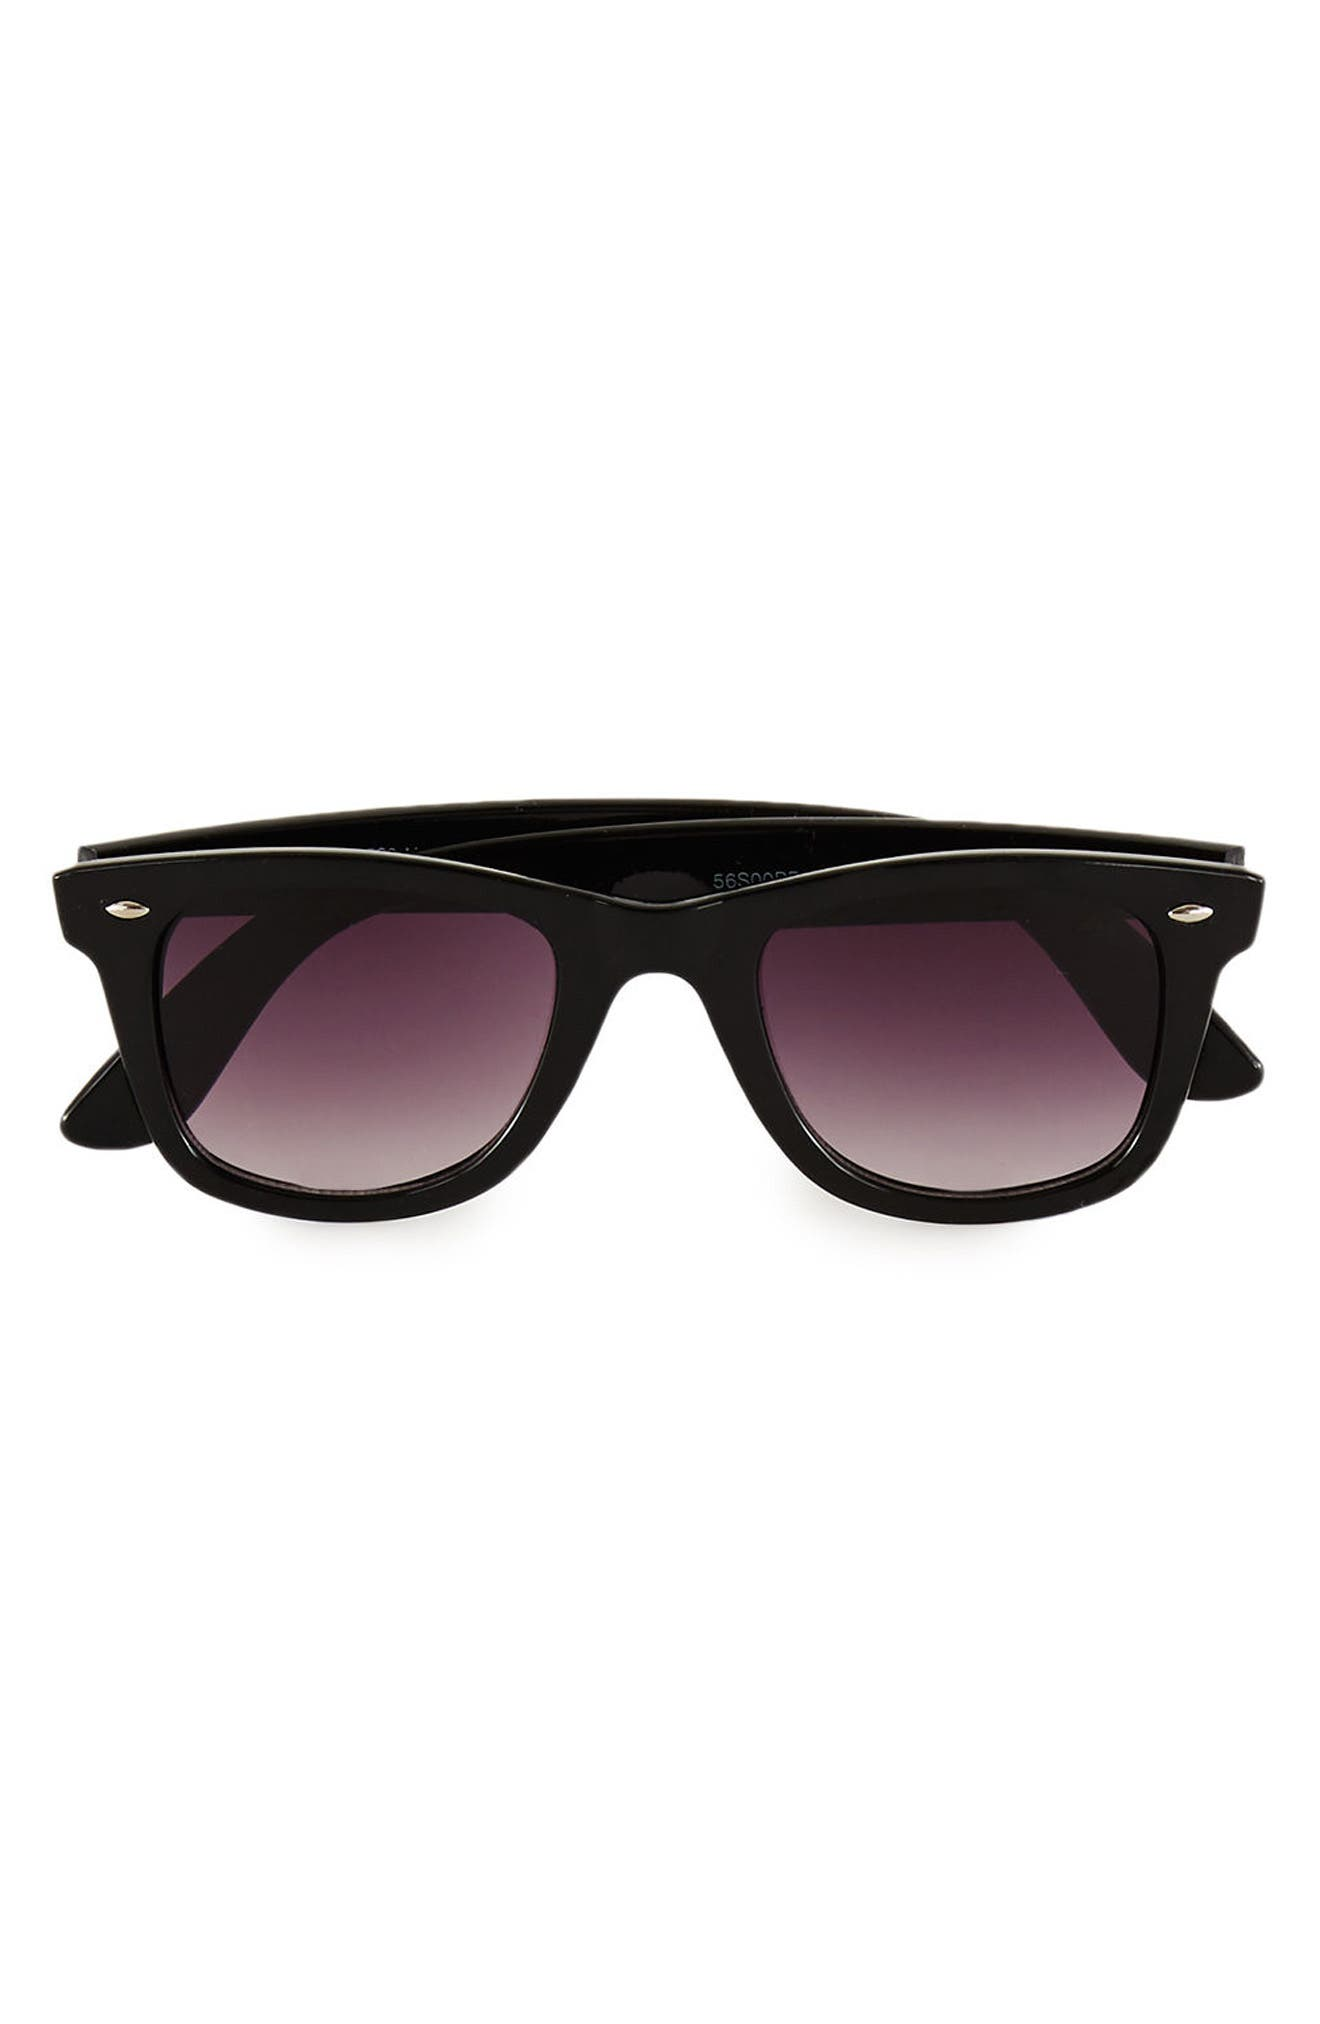 Main Image - Topman 48mm Round Sunglasses